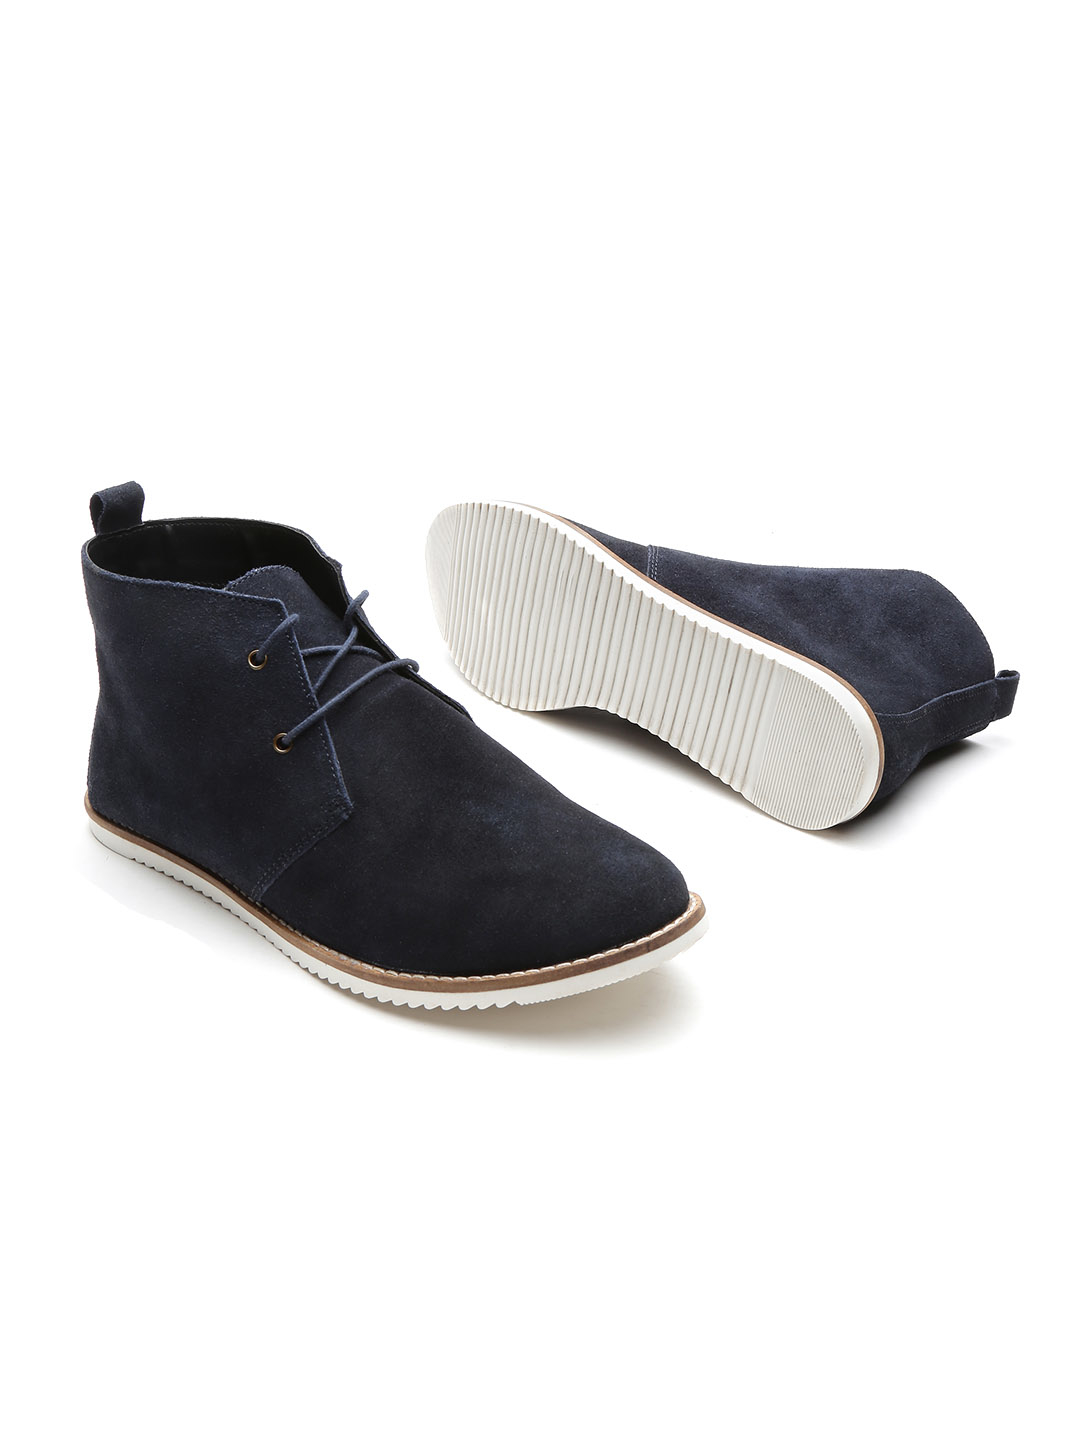 22-types-of-boots-Navy-Mid-Top-Flat-Boots